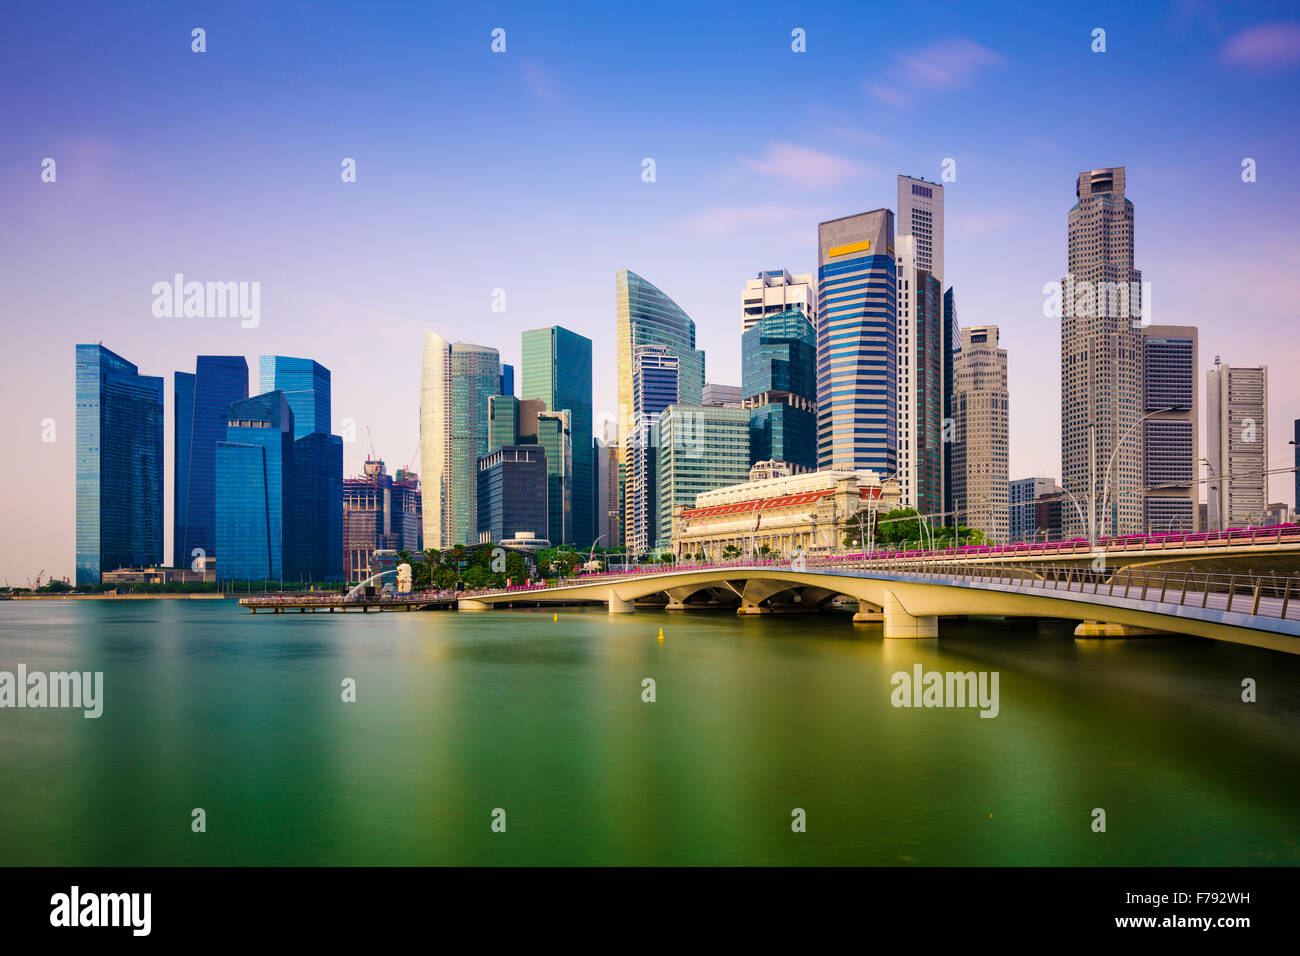 Sur les toits de Singapour Marina Bay. Photo Stock